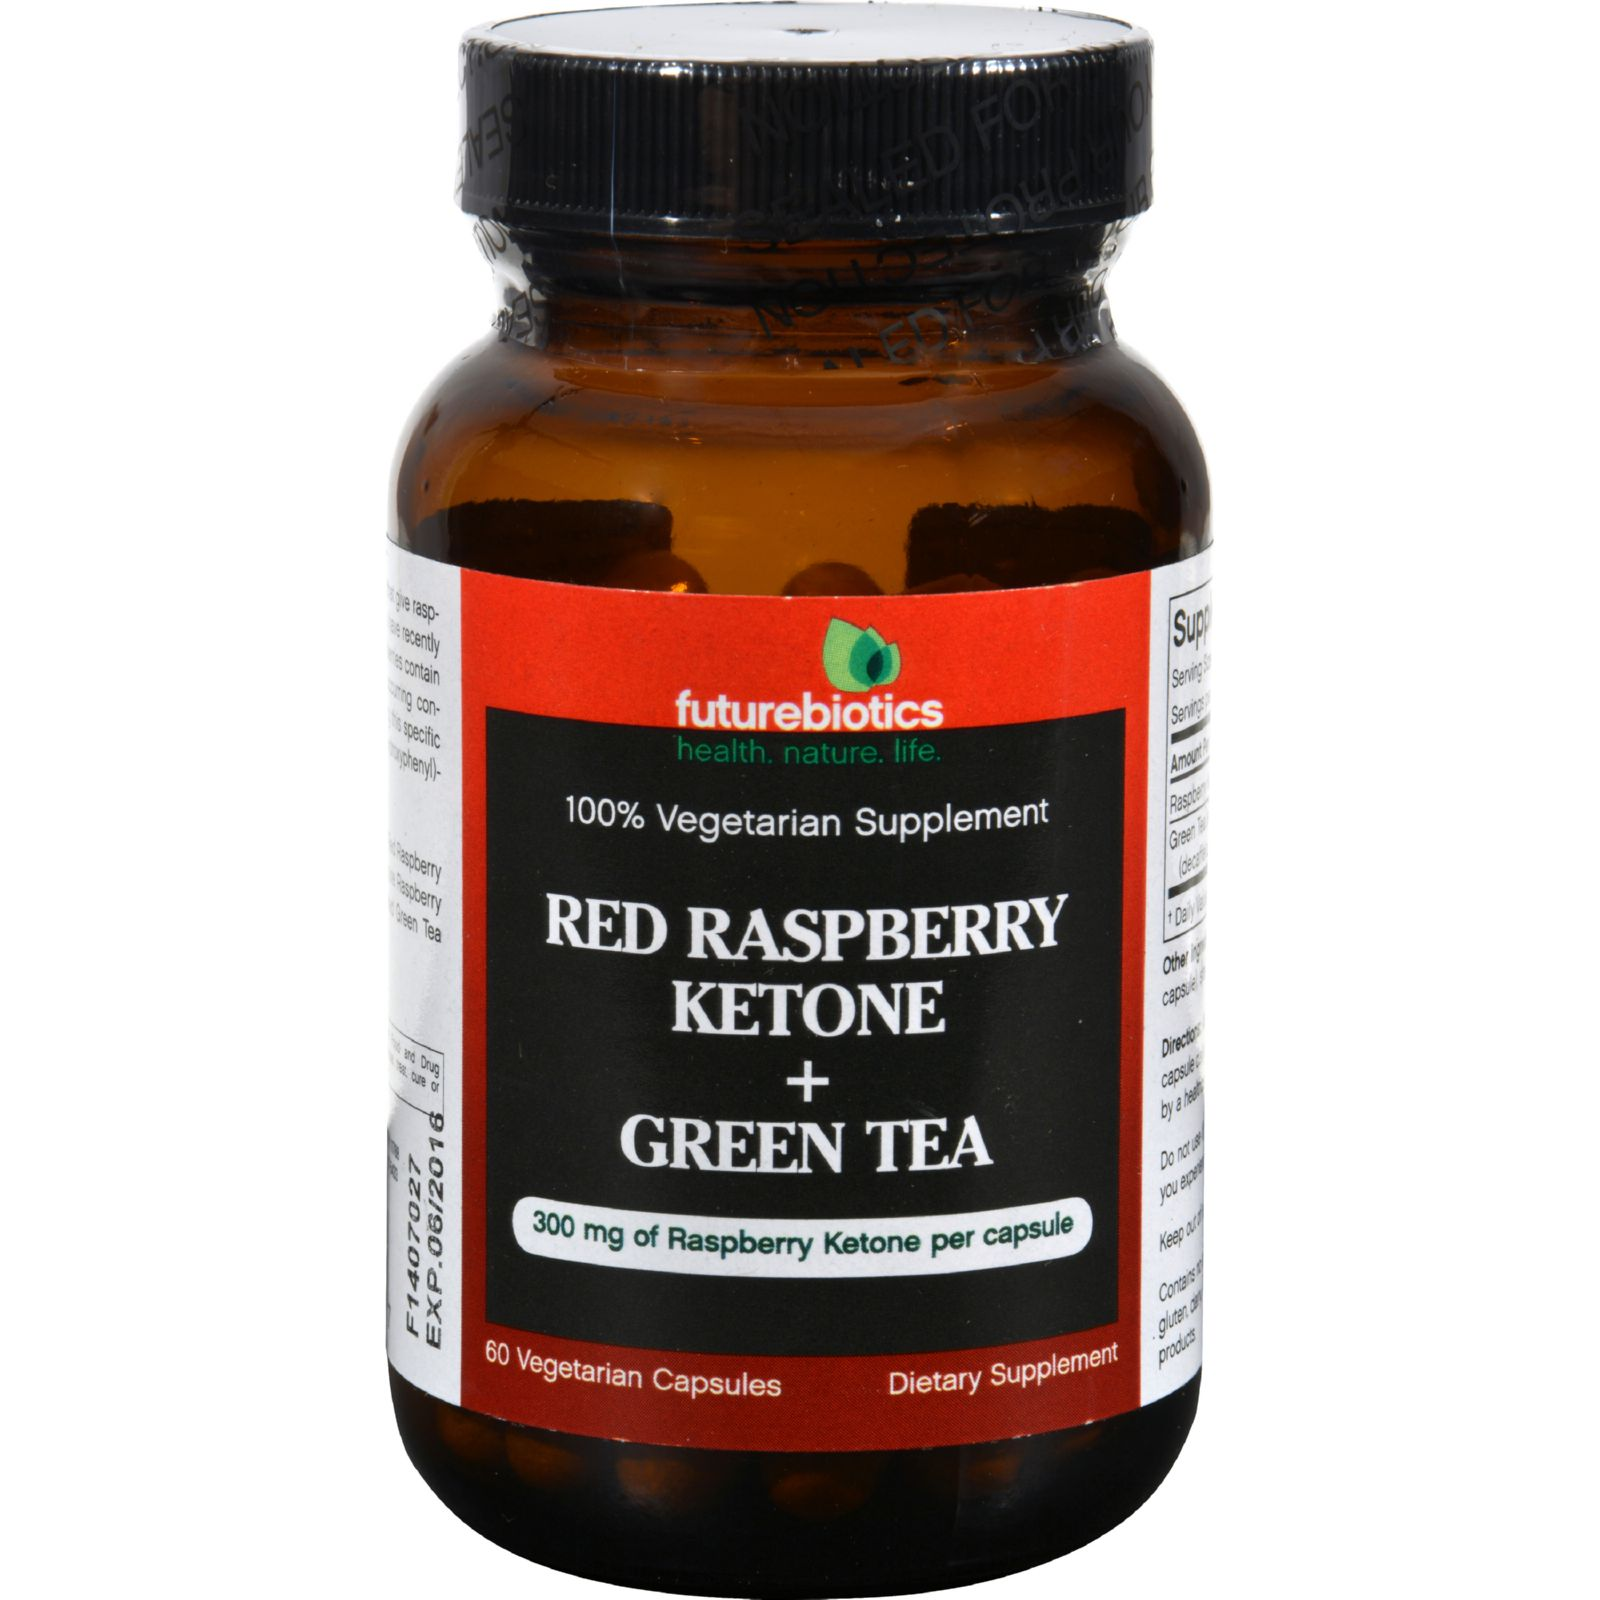 Futurebiotics Raspberry Ketone Plus Green Tea - 60 Vegetarian Capsules